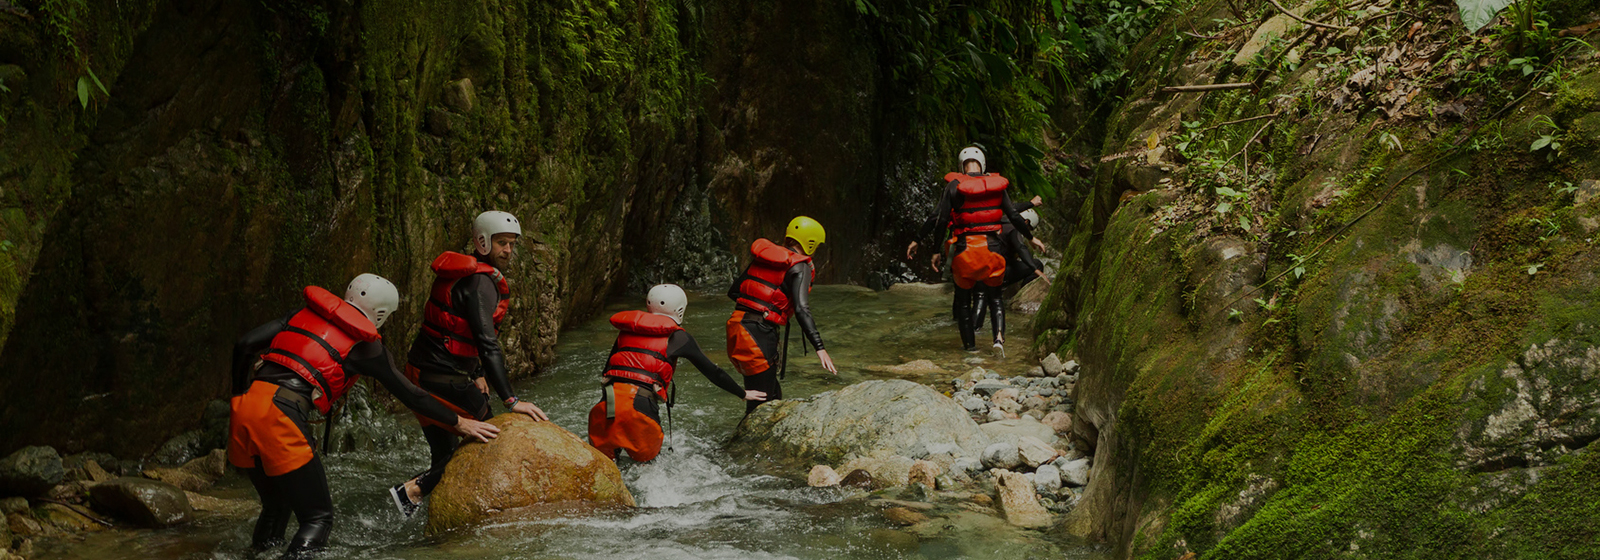 canyoning-queensland-testimonials